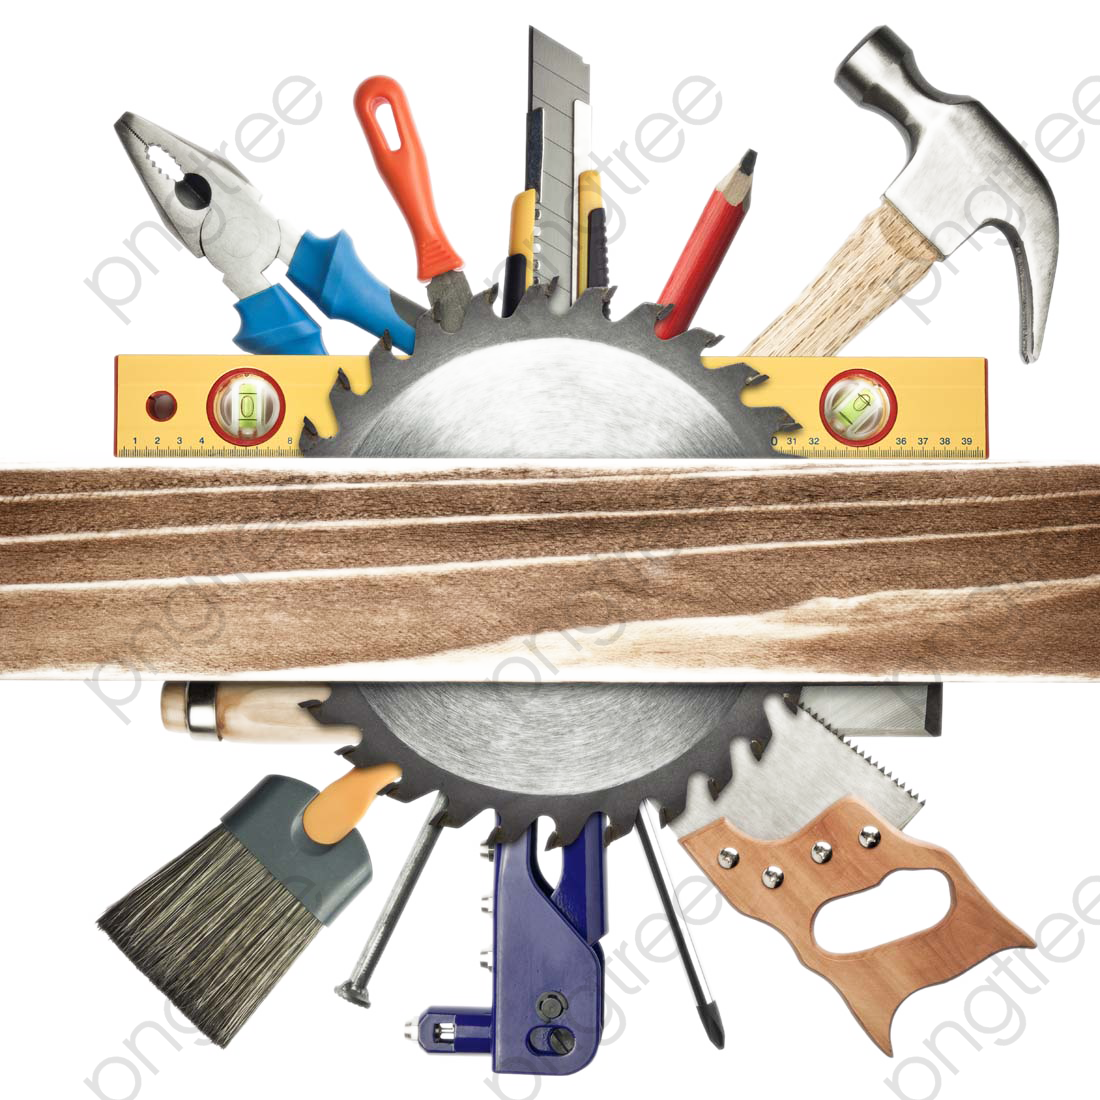 Hardware Maintenance Tools Home Renovation Ruler Png Transparent Clipart Image And Psd File For Free Download Carpentry Wood Planks Maintenance Tools